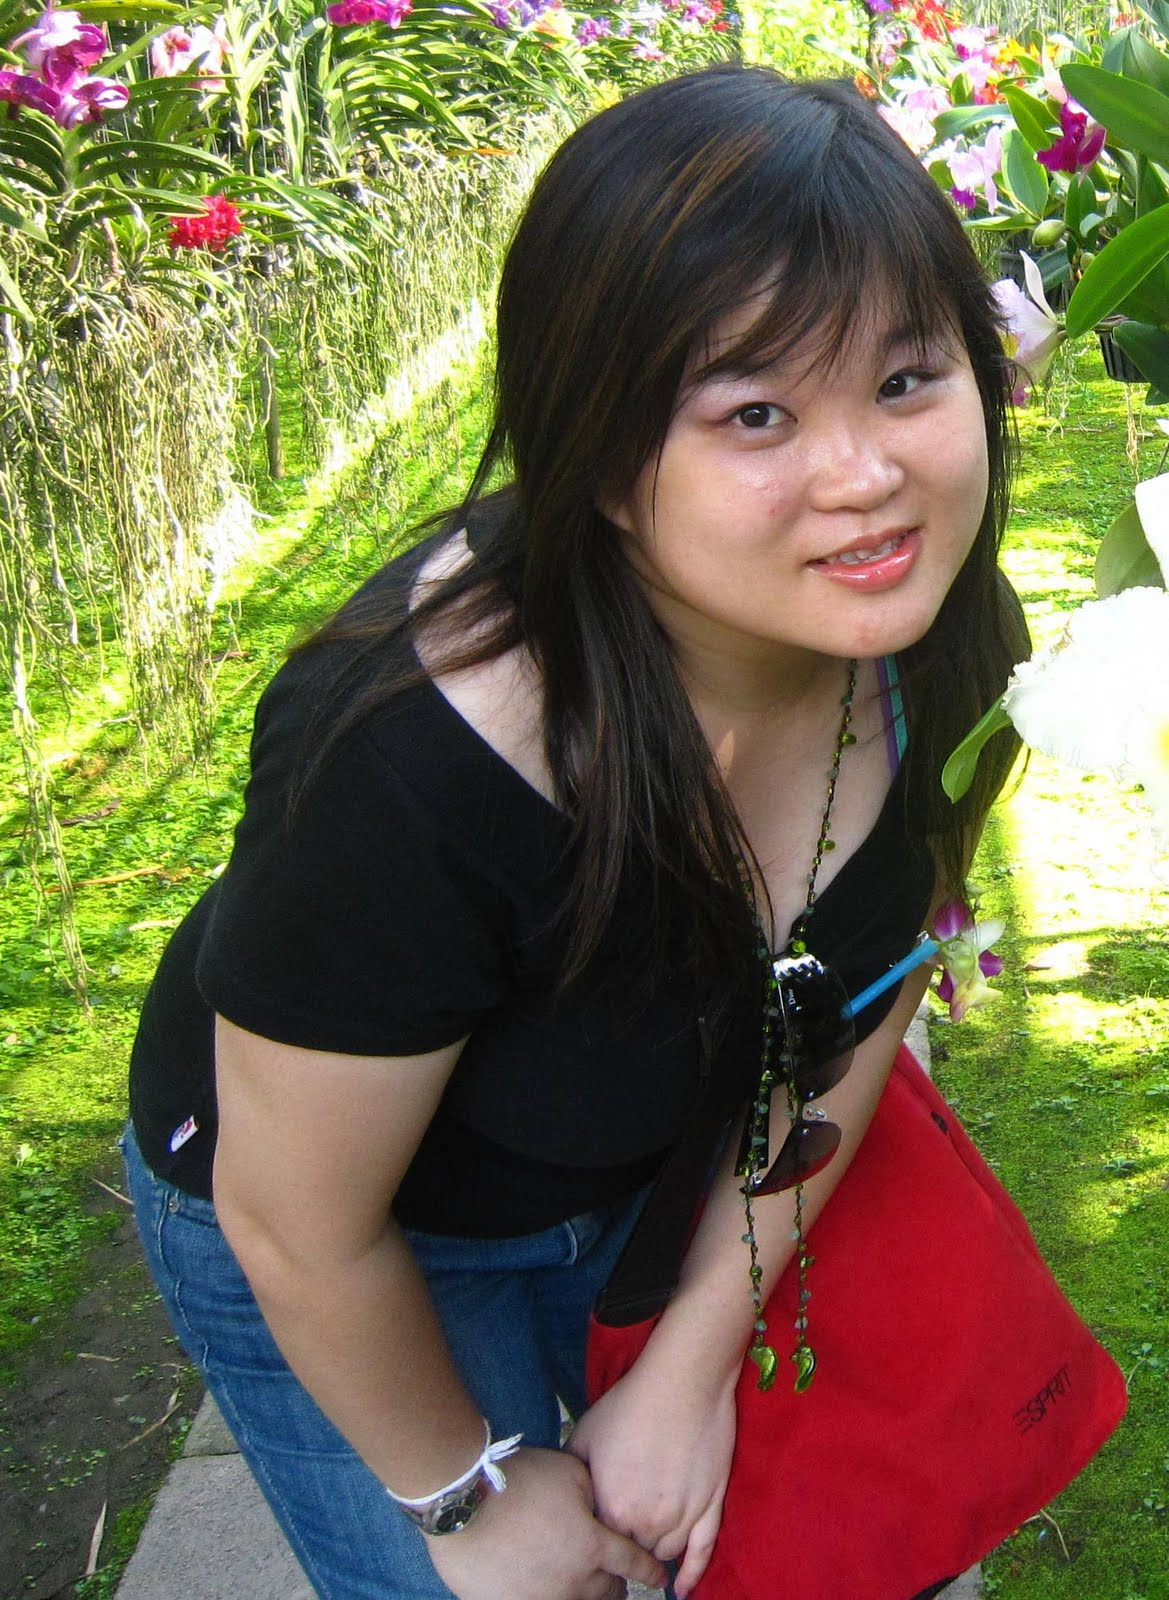 bayan lepas single asian girls Find bayan lepas single girls with loveawakecom more than just a free dating site, we find compatible female matches for you from bayan lepas, malaysia review our personals for free and without registration.